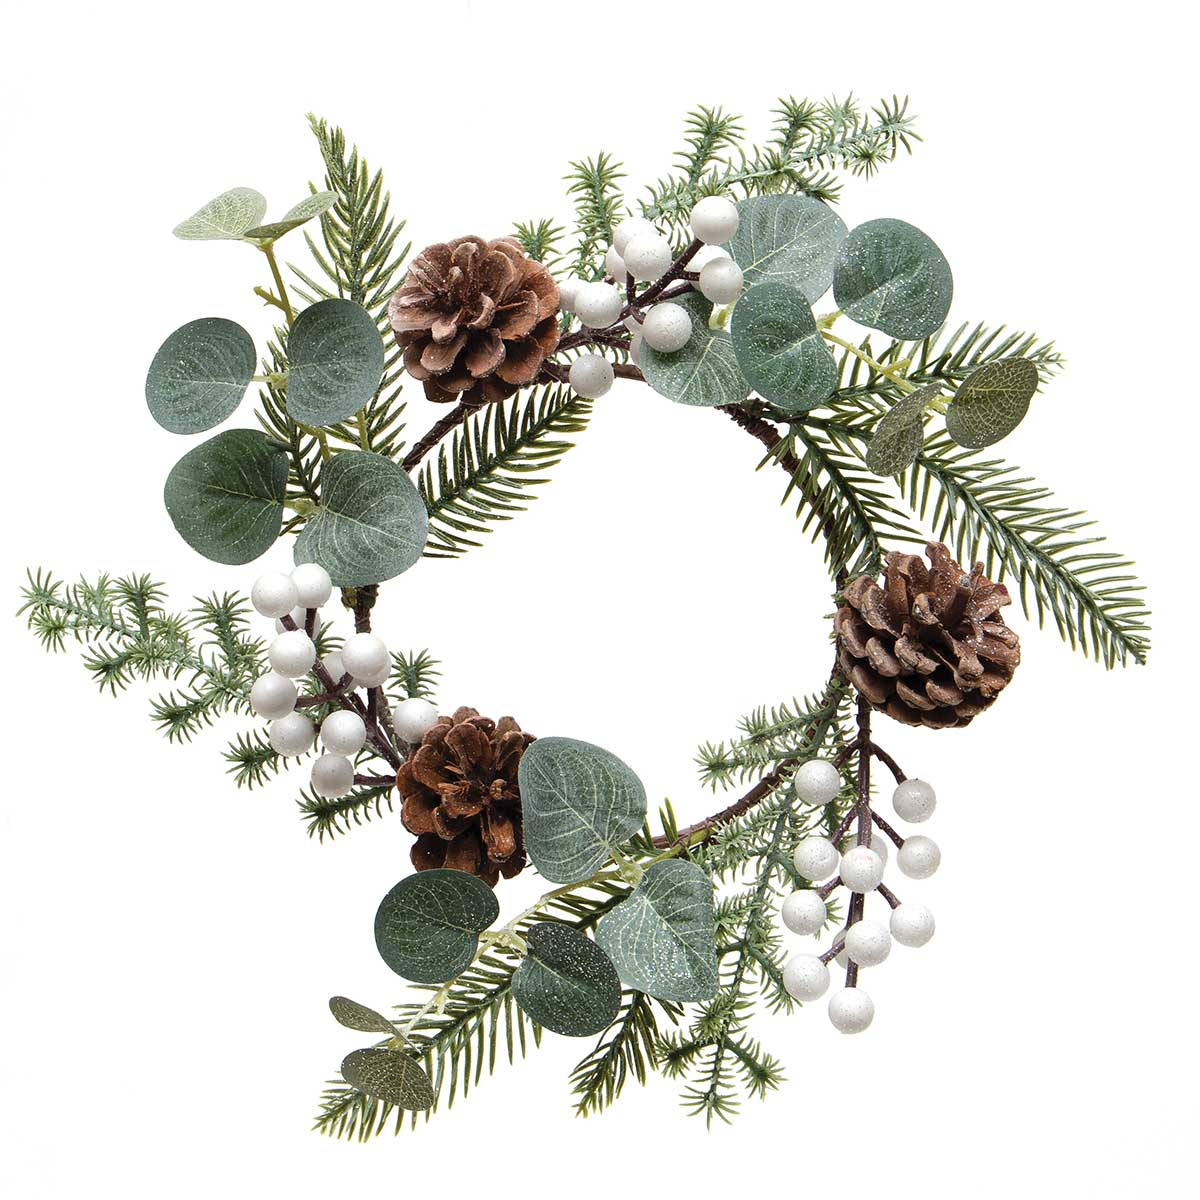 WINTER BERRY CANDLE RING WITH WHITE BERRIES, PINE